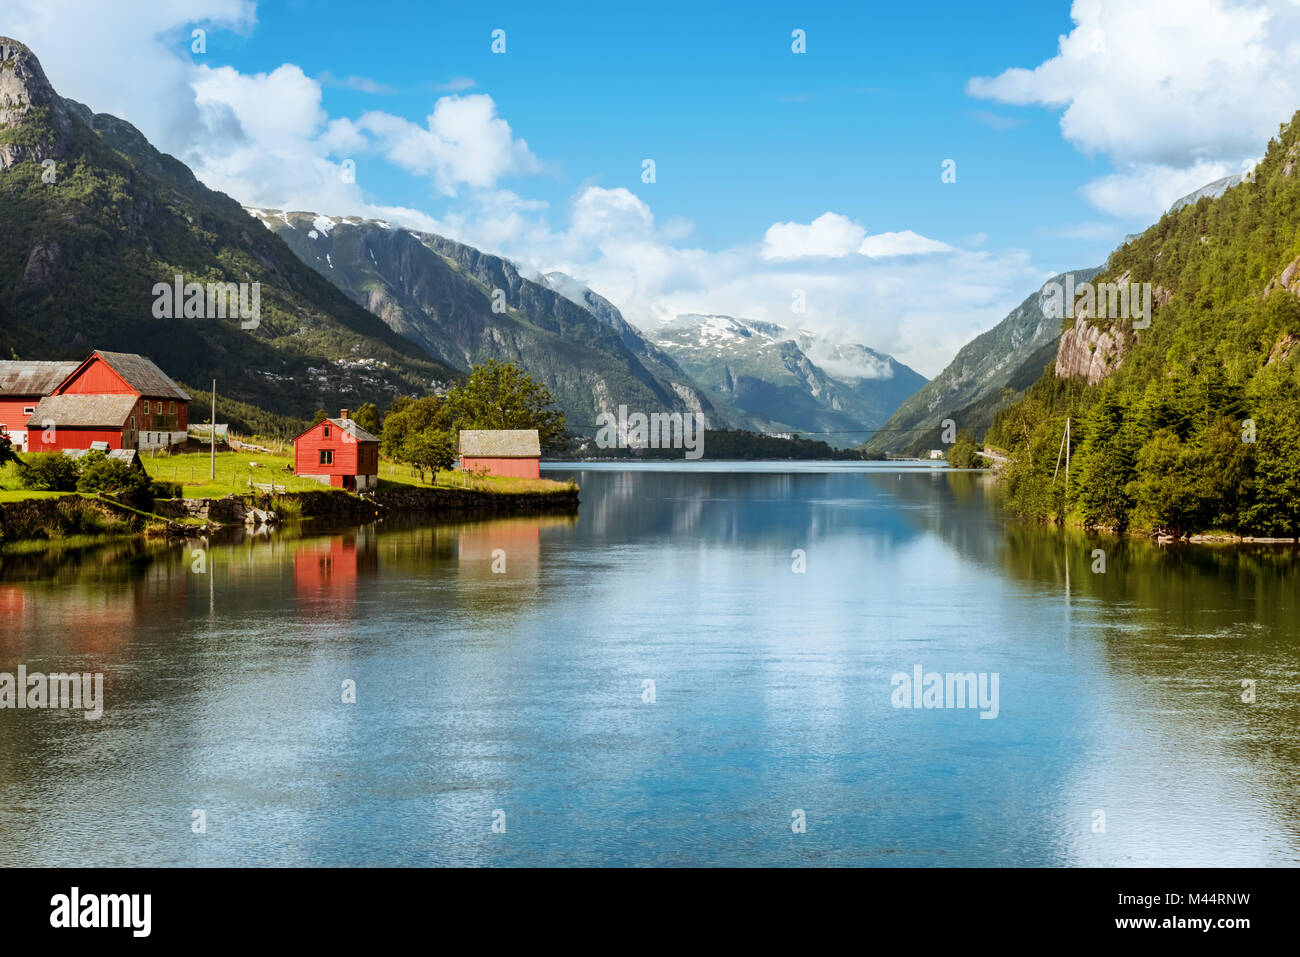 Odda is Norway town located near Trolltunga rock - Stock Image